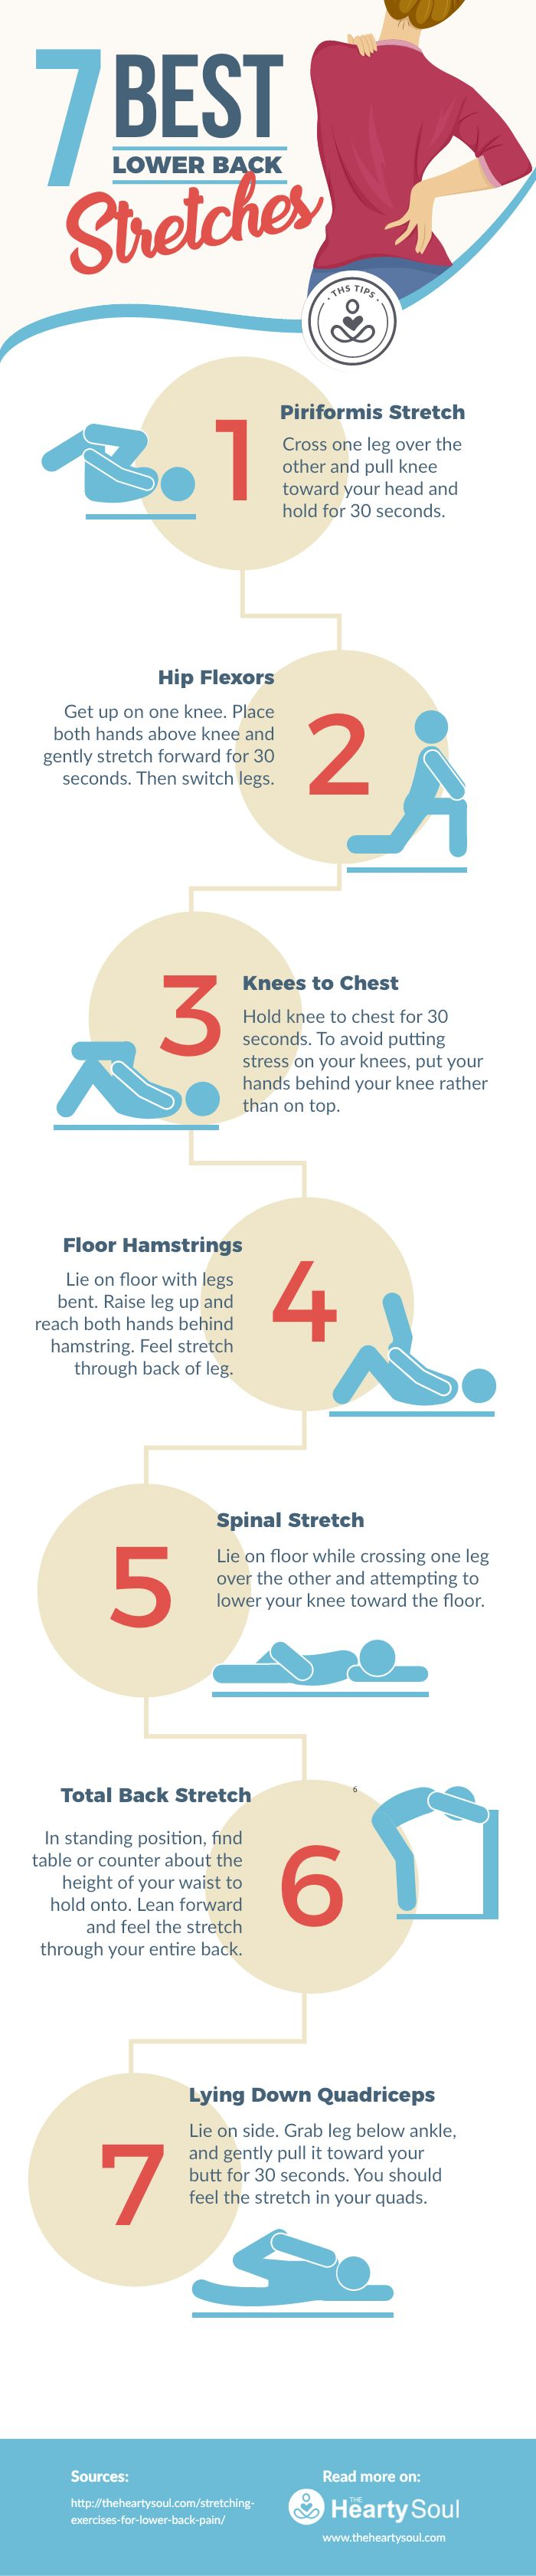 Do this set of 7 stretches in 7 minutes to help lower back pain!